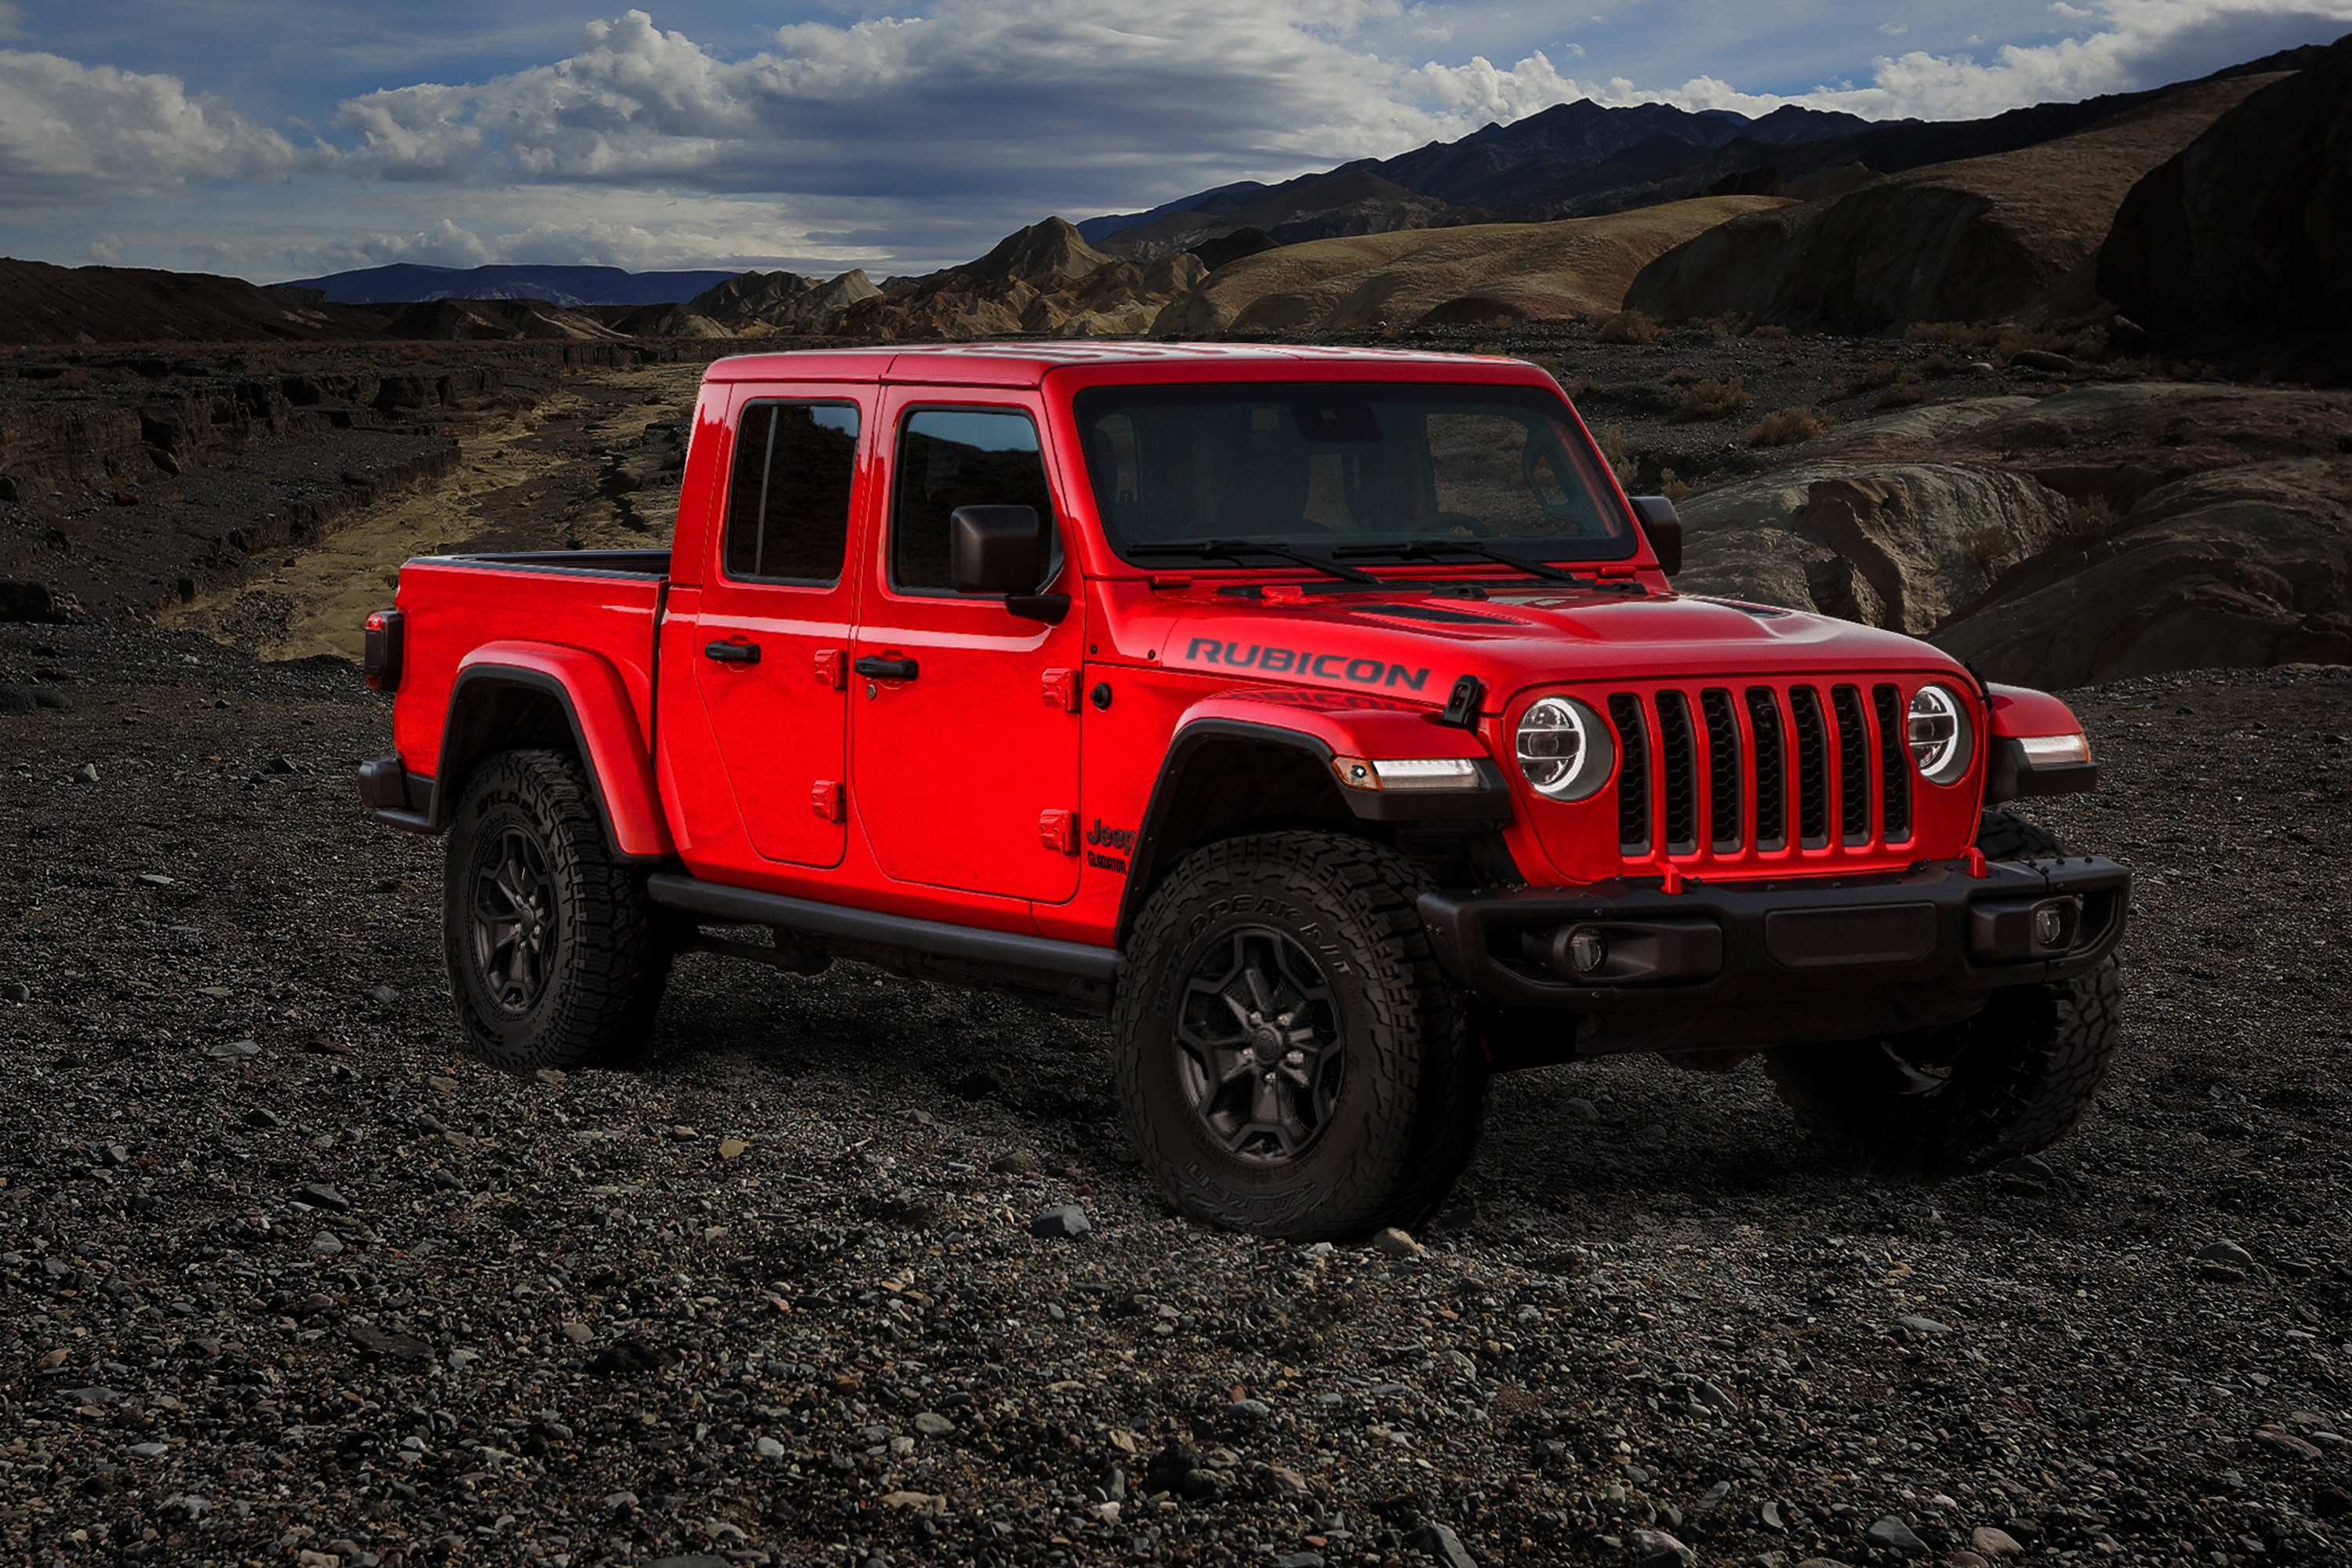 69 Best What Is The Price Of The 2020 Jeep Gladiator Engine